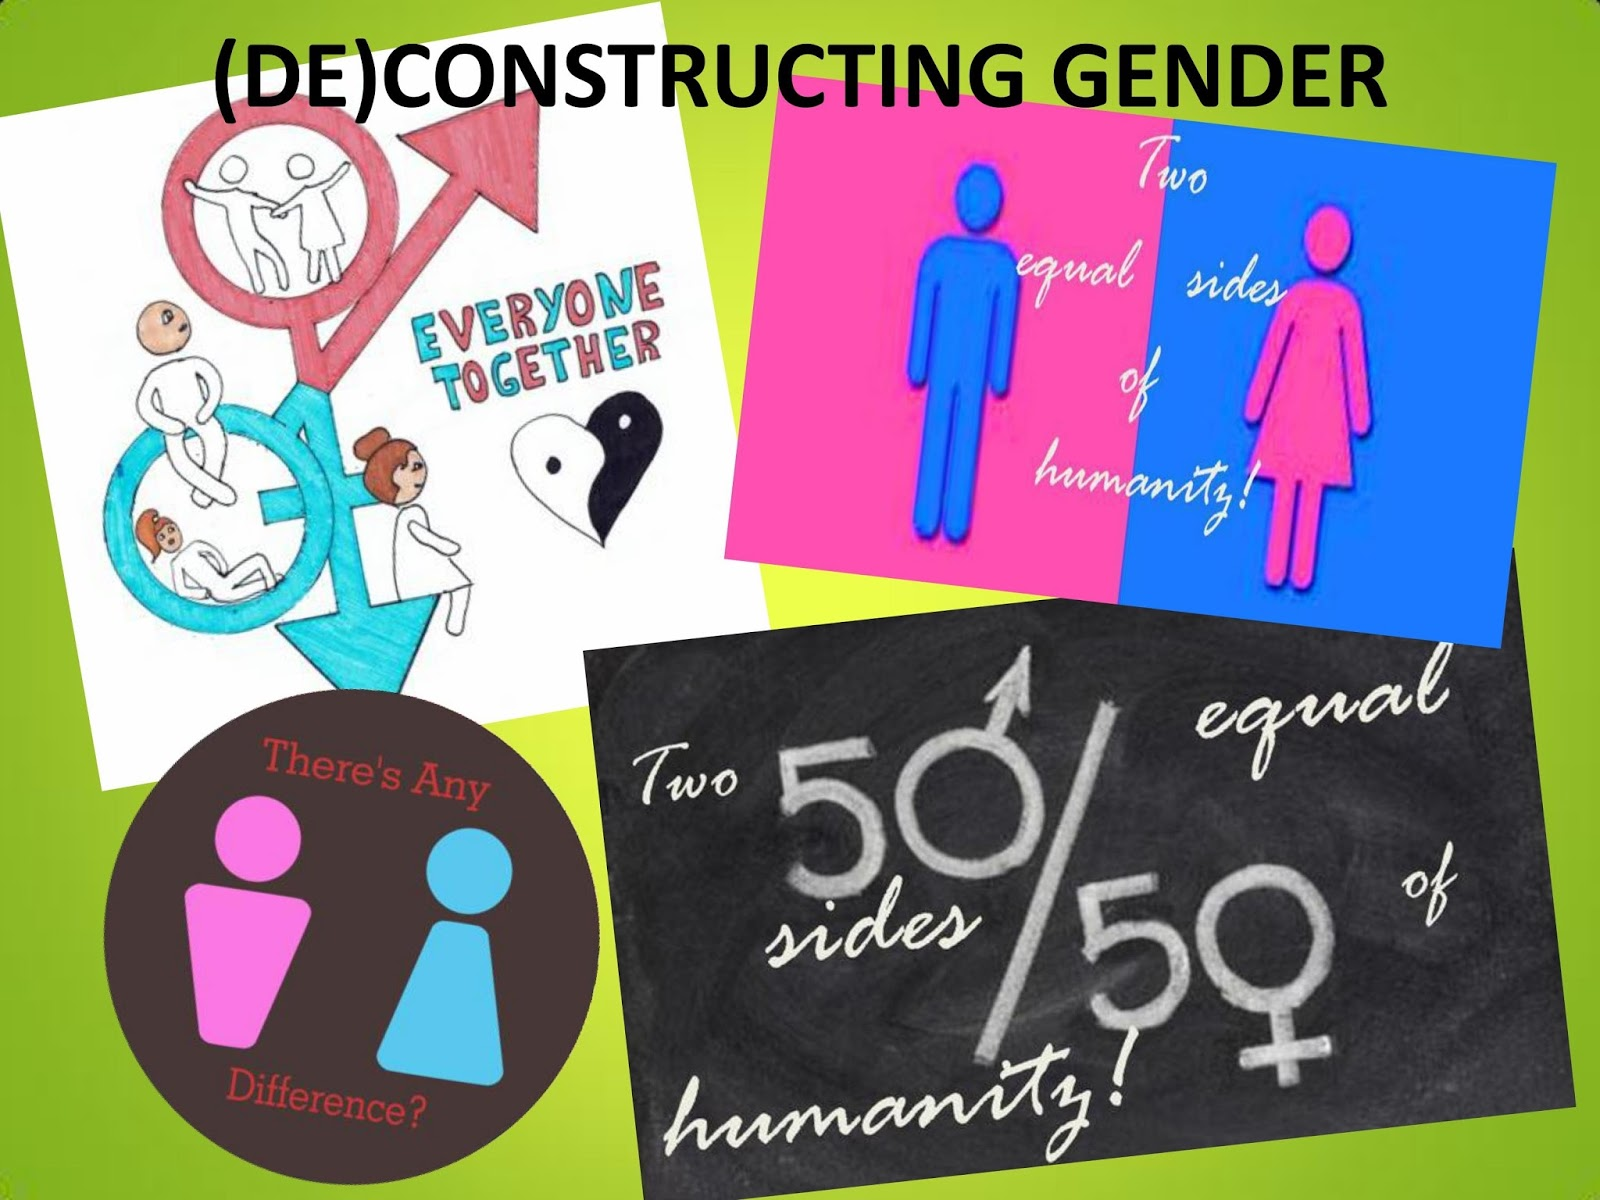 the constructions of gender Social construction of gender social construction of gender is normally discussed in contrast to biological facts of differences between men and women for example men are naturally more aggressive and women relatively more passive because of hormones like testosterone, and women are more interested in clothing on average because in the human.